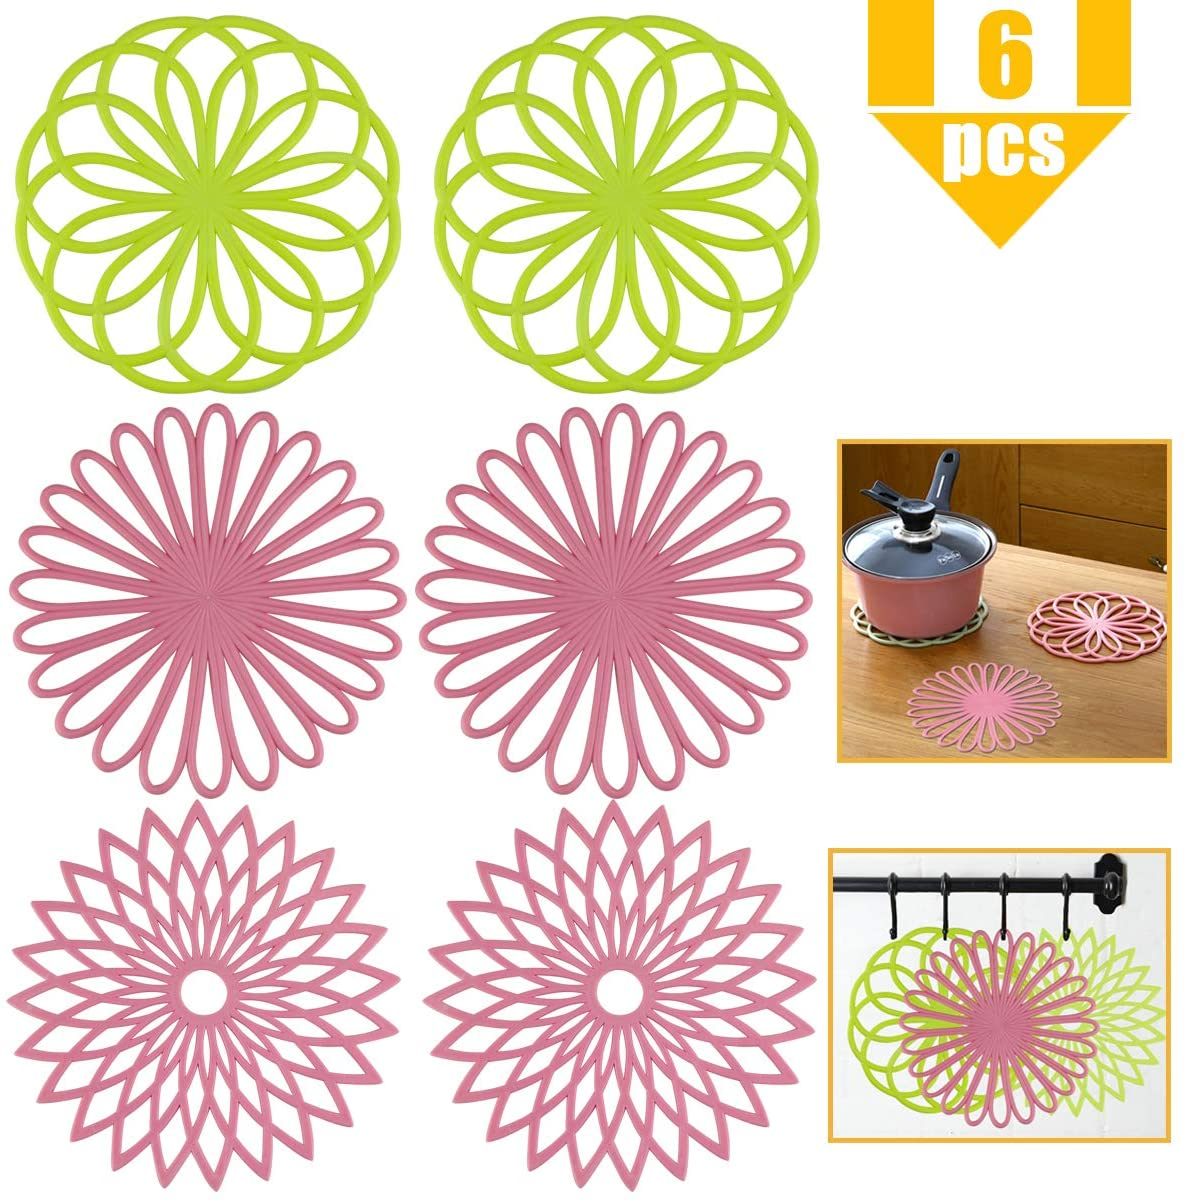 YG_Oline 6 Pcs Silicone Trivets for Hot Pots and Pans, 3 Different Designs Kitchen Decor Pot Holders Kitchen Heat Pad Silicone Hot Mat, Mixed Color